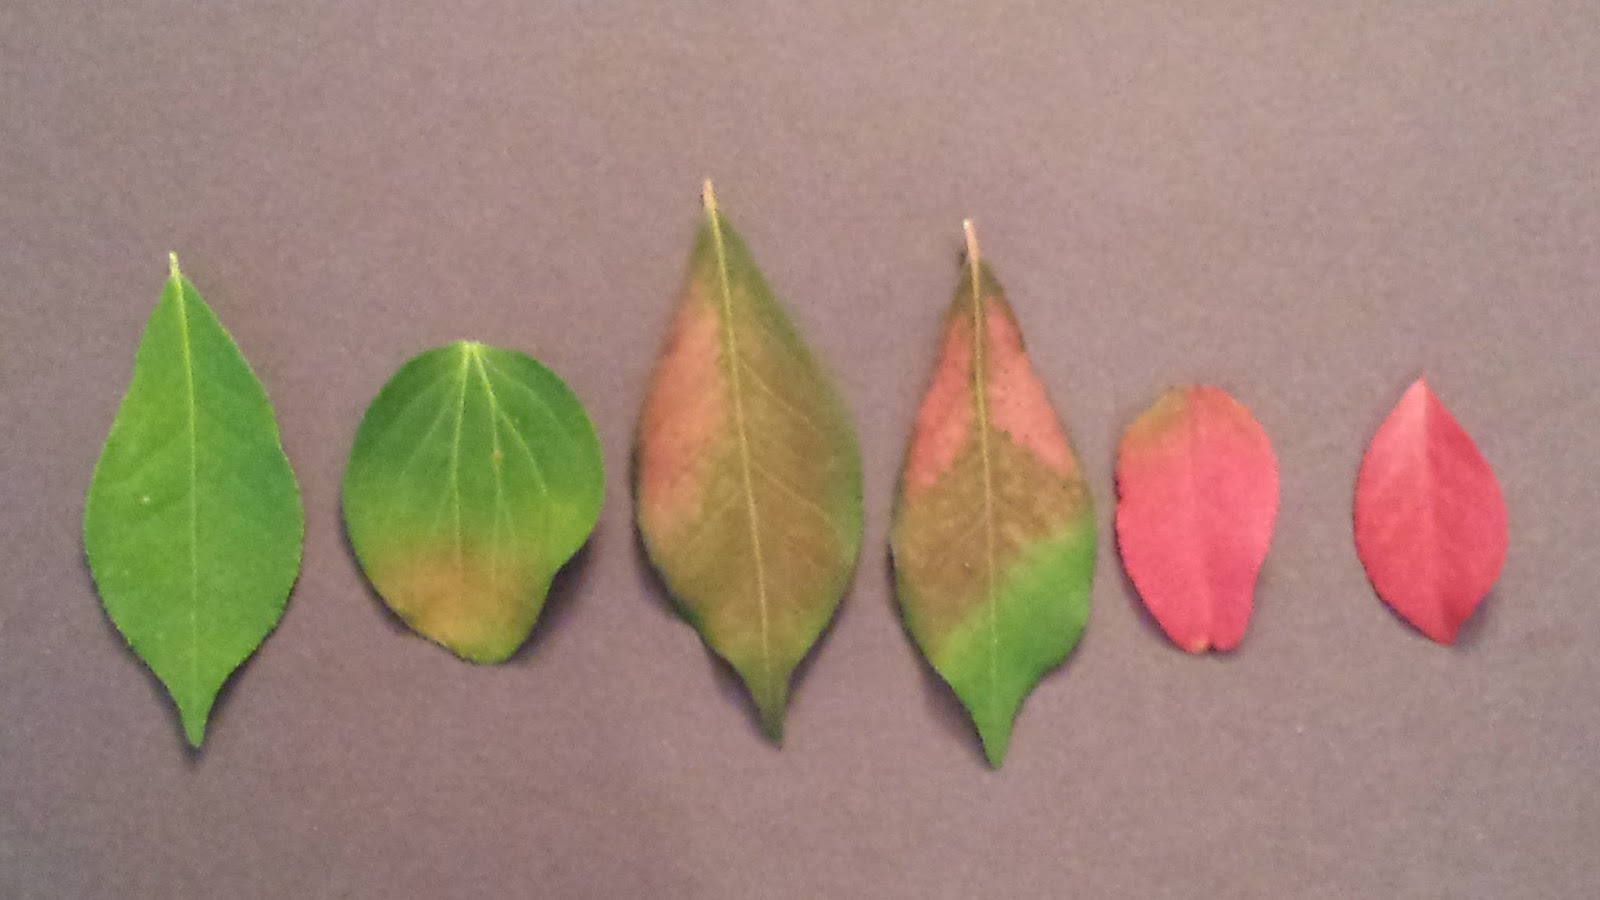 john the math guy the color of leaves